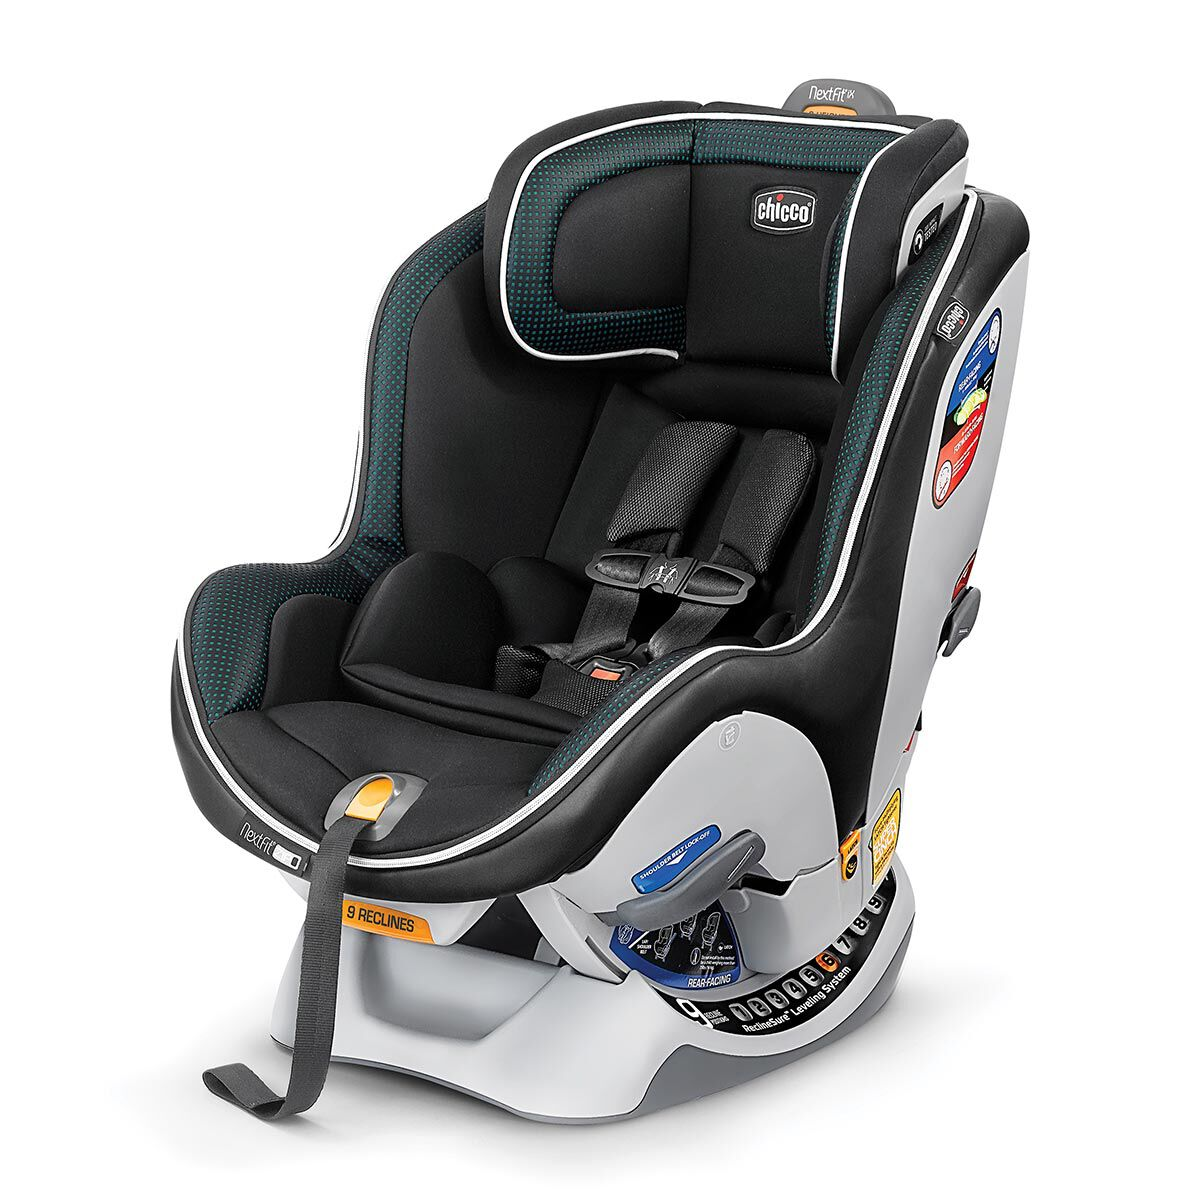 car seat convertible chicco. Black Bedroom Furniture Sets. Home Design Ideas